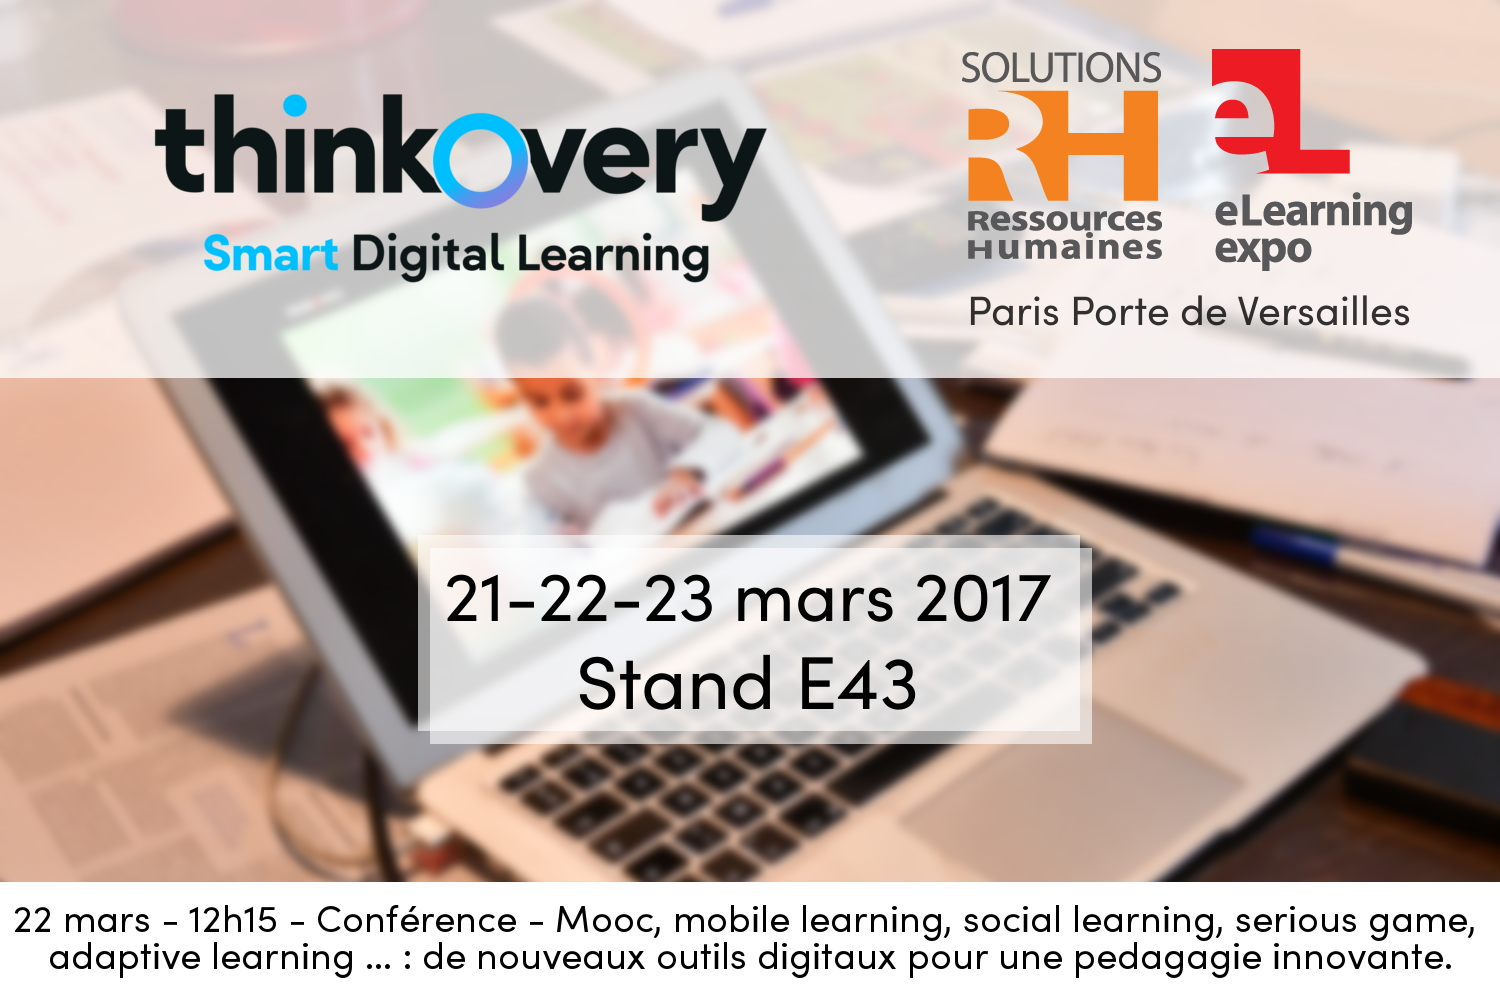 Thinkovery au salon solutions rh du 21 au 23 mars 2017 for Salon solutions